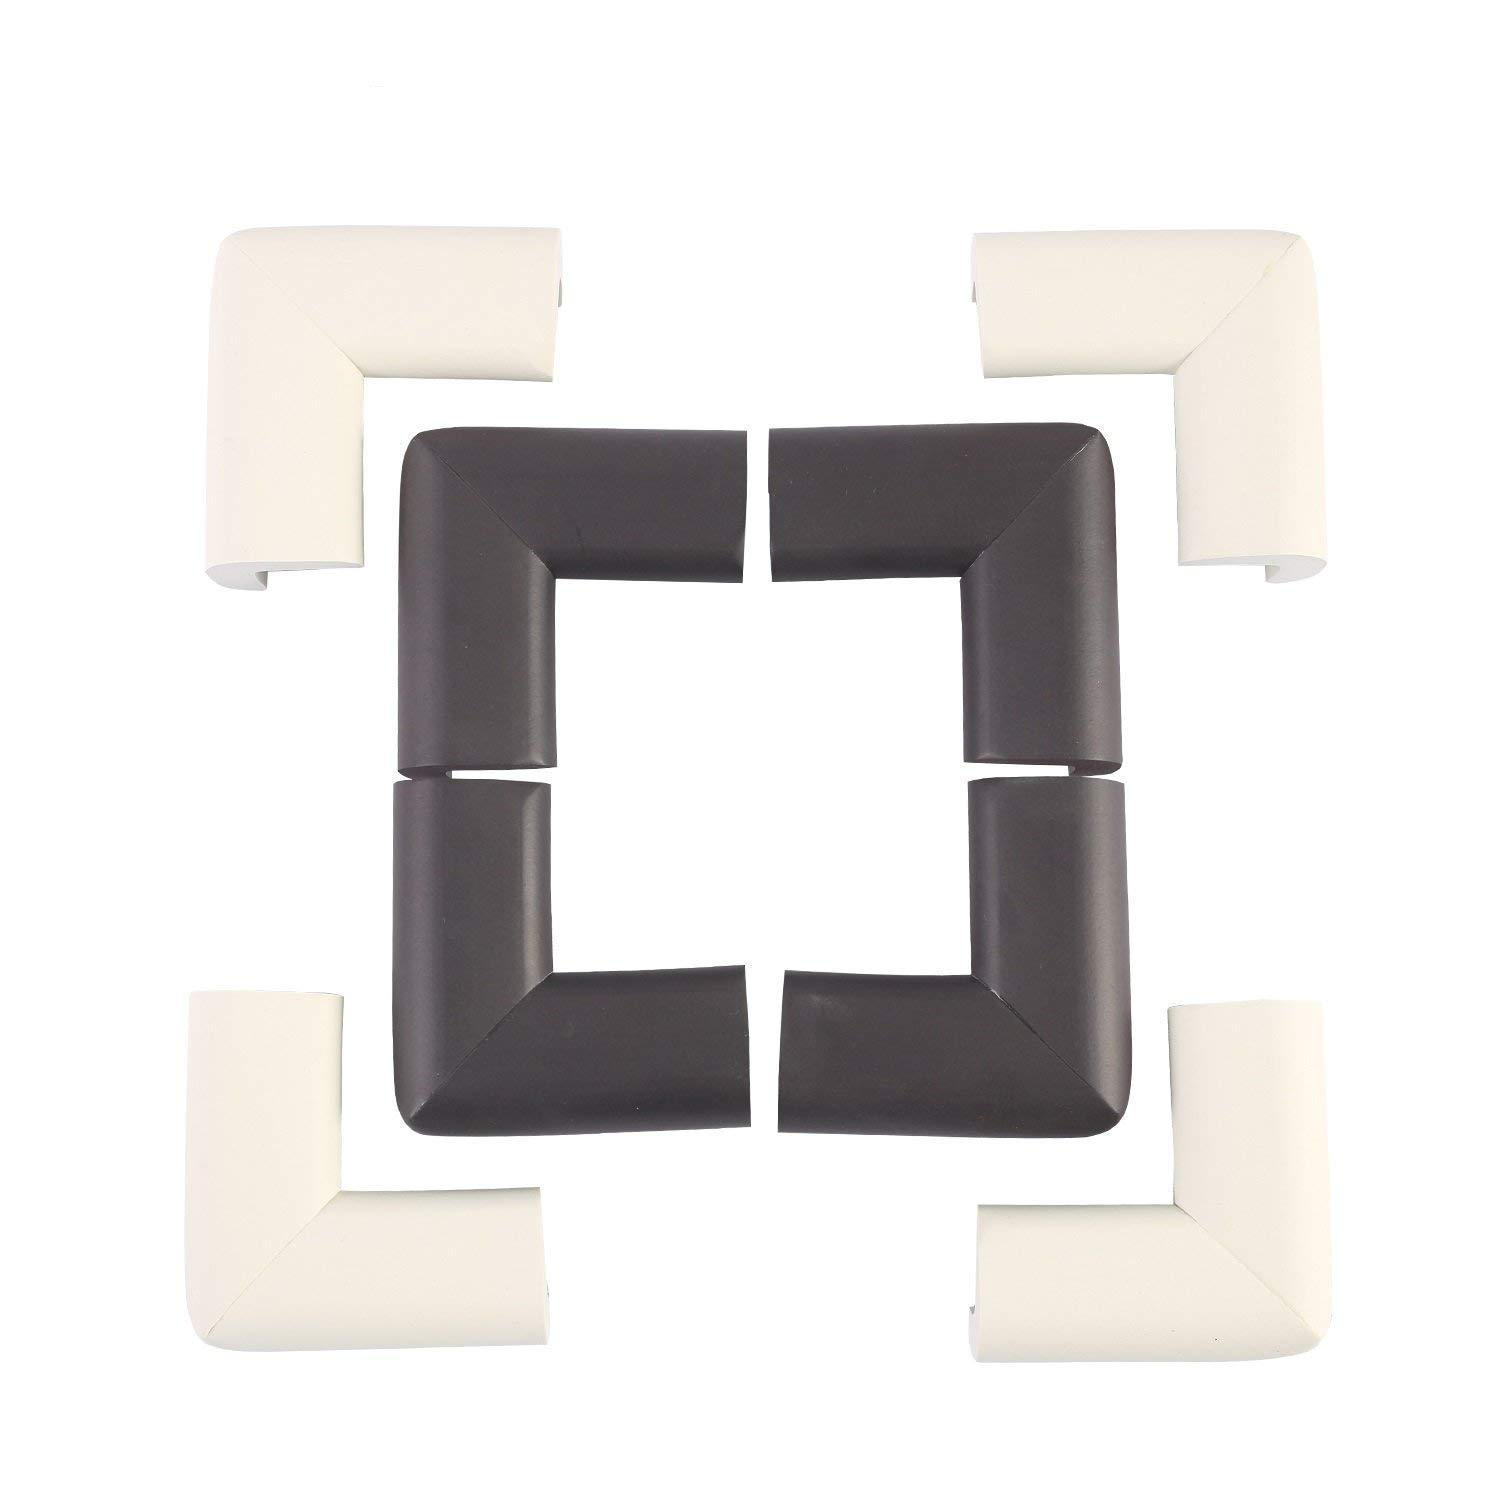 4pcs Child Safety Corner Protector Soft Pvc Desk Table Guard Edge Protection Cover Safe Cushion Furniture